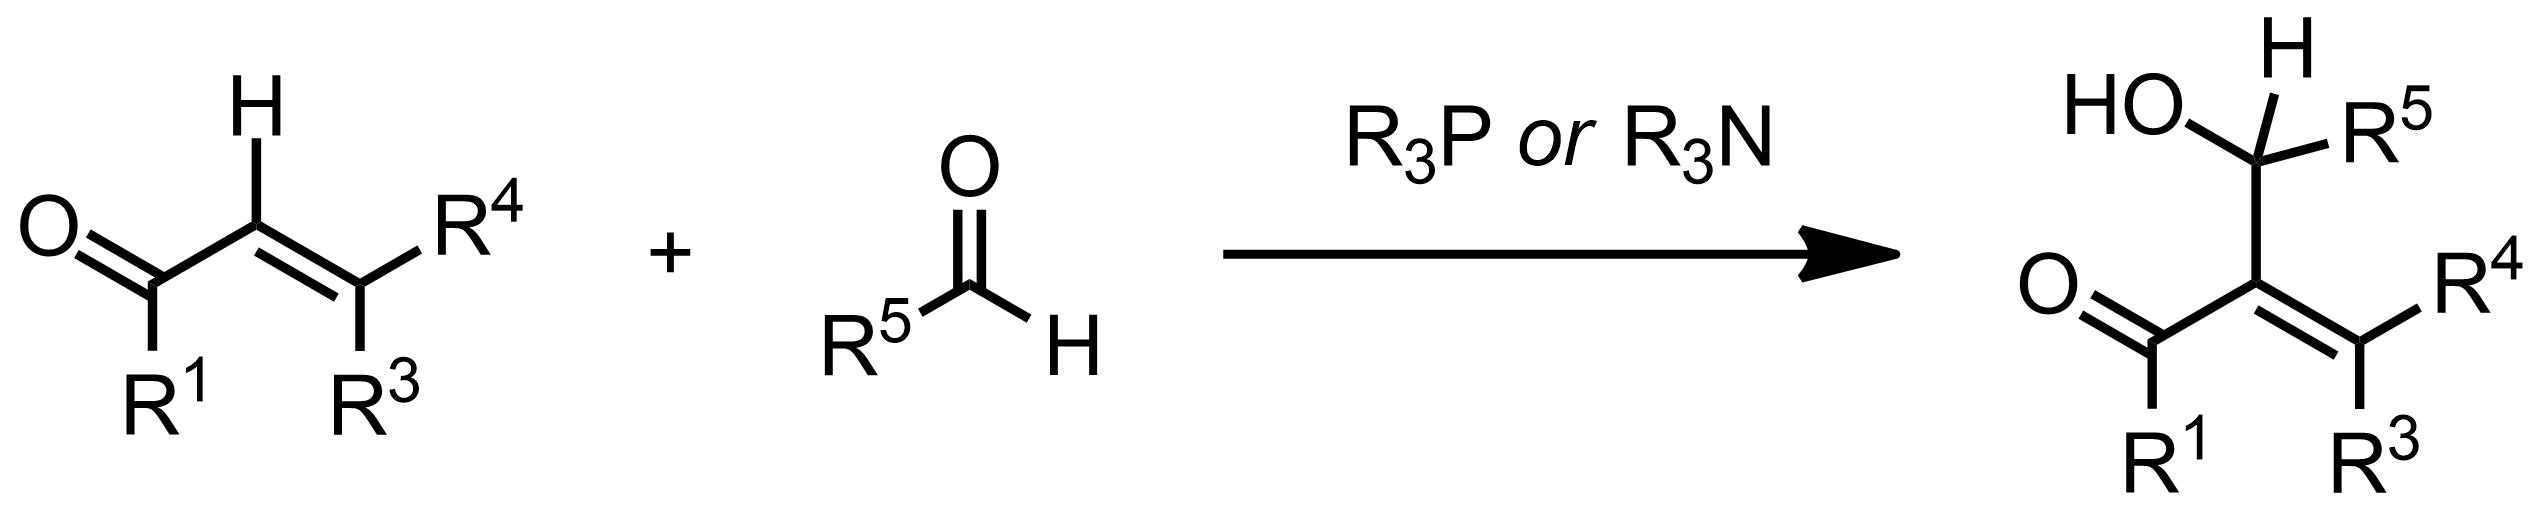 Schematic representation of the Morita-Baylis-Hillman Reaction.